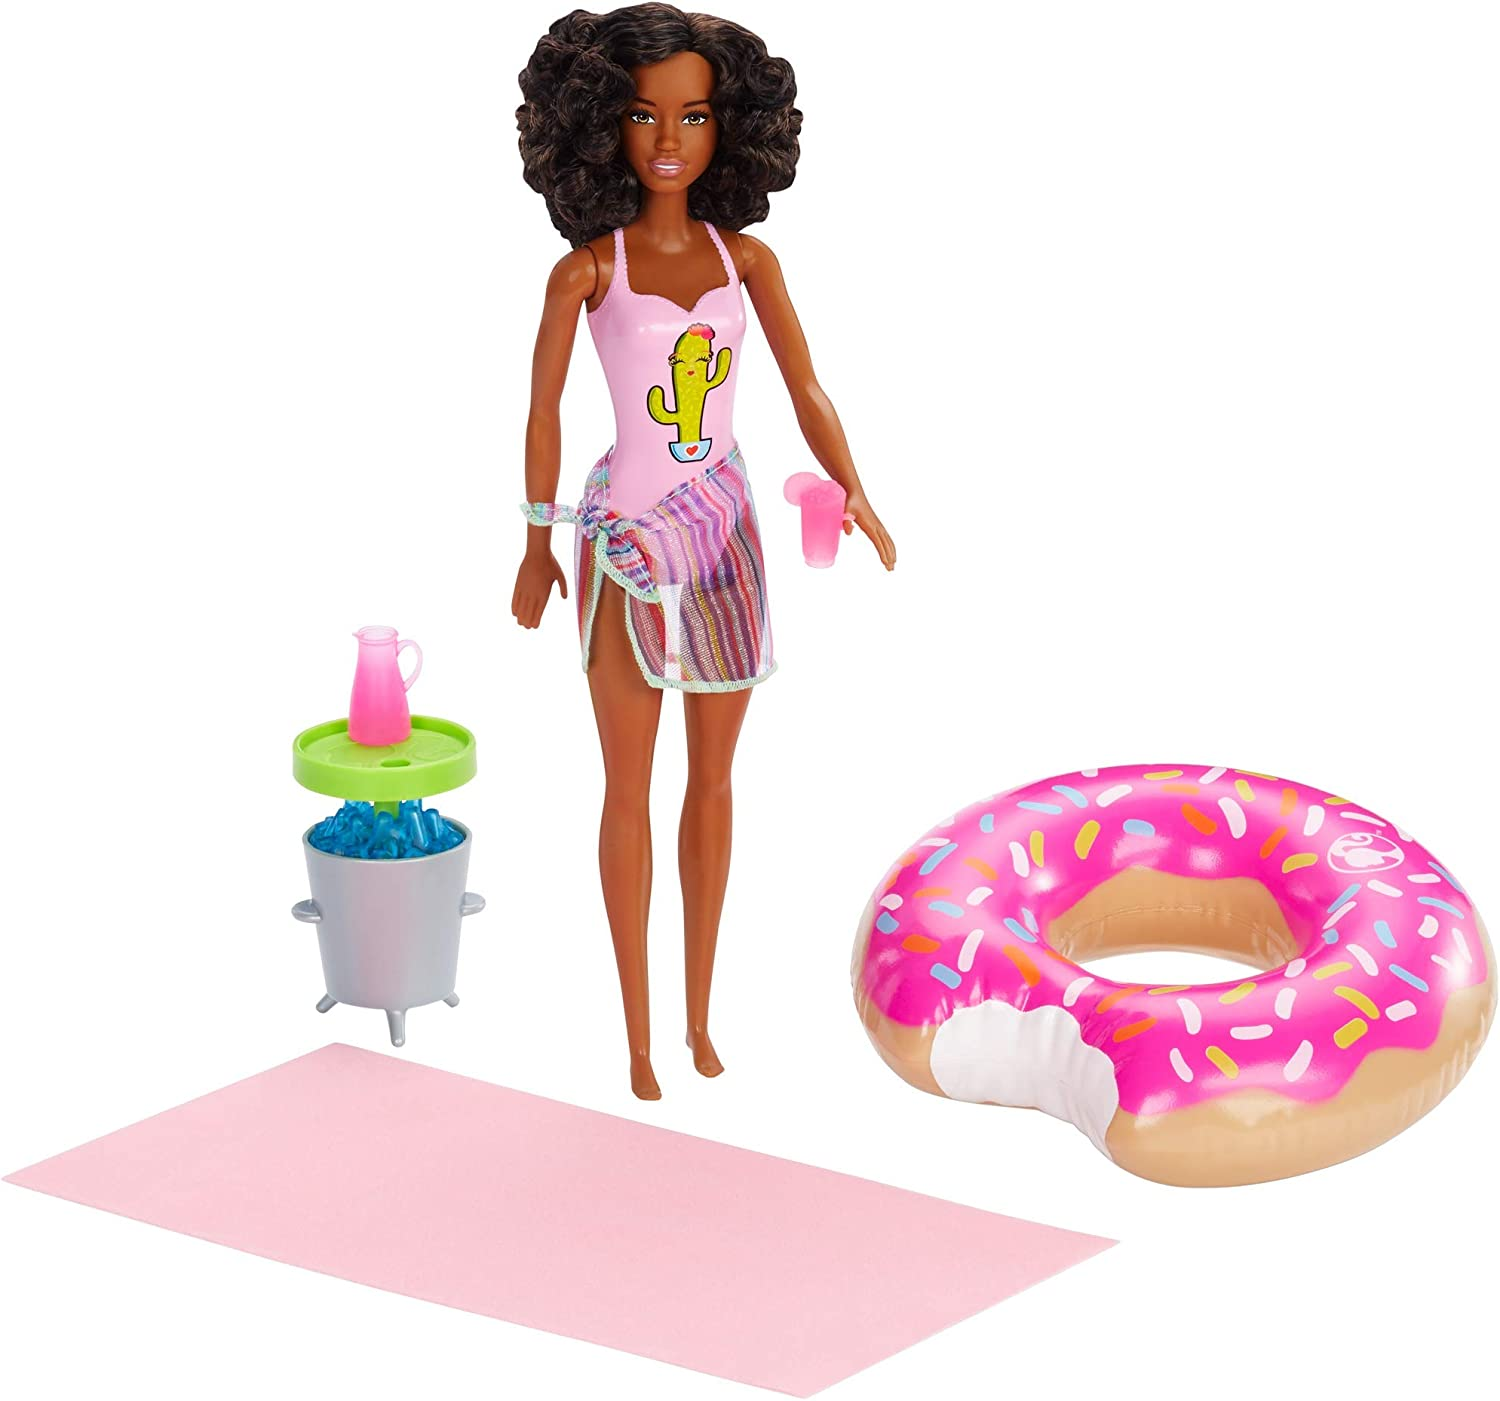 Barbie GHT21 Doll and Playset